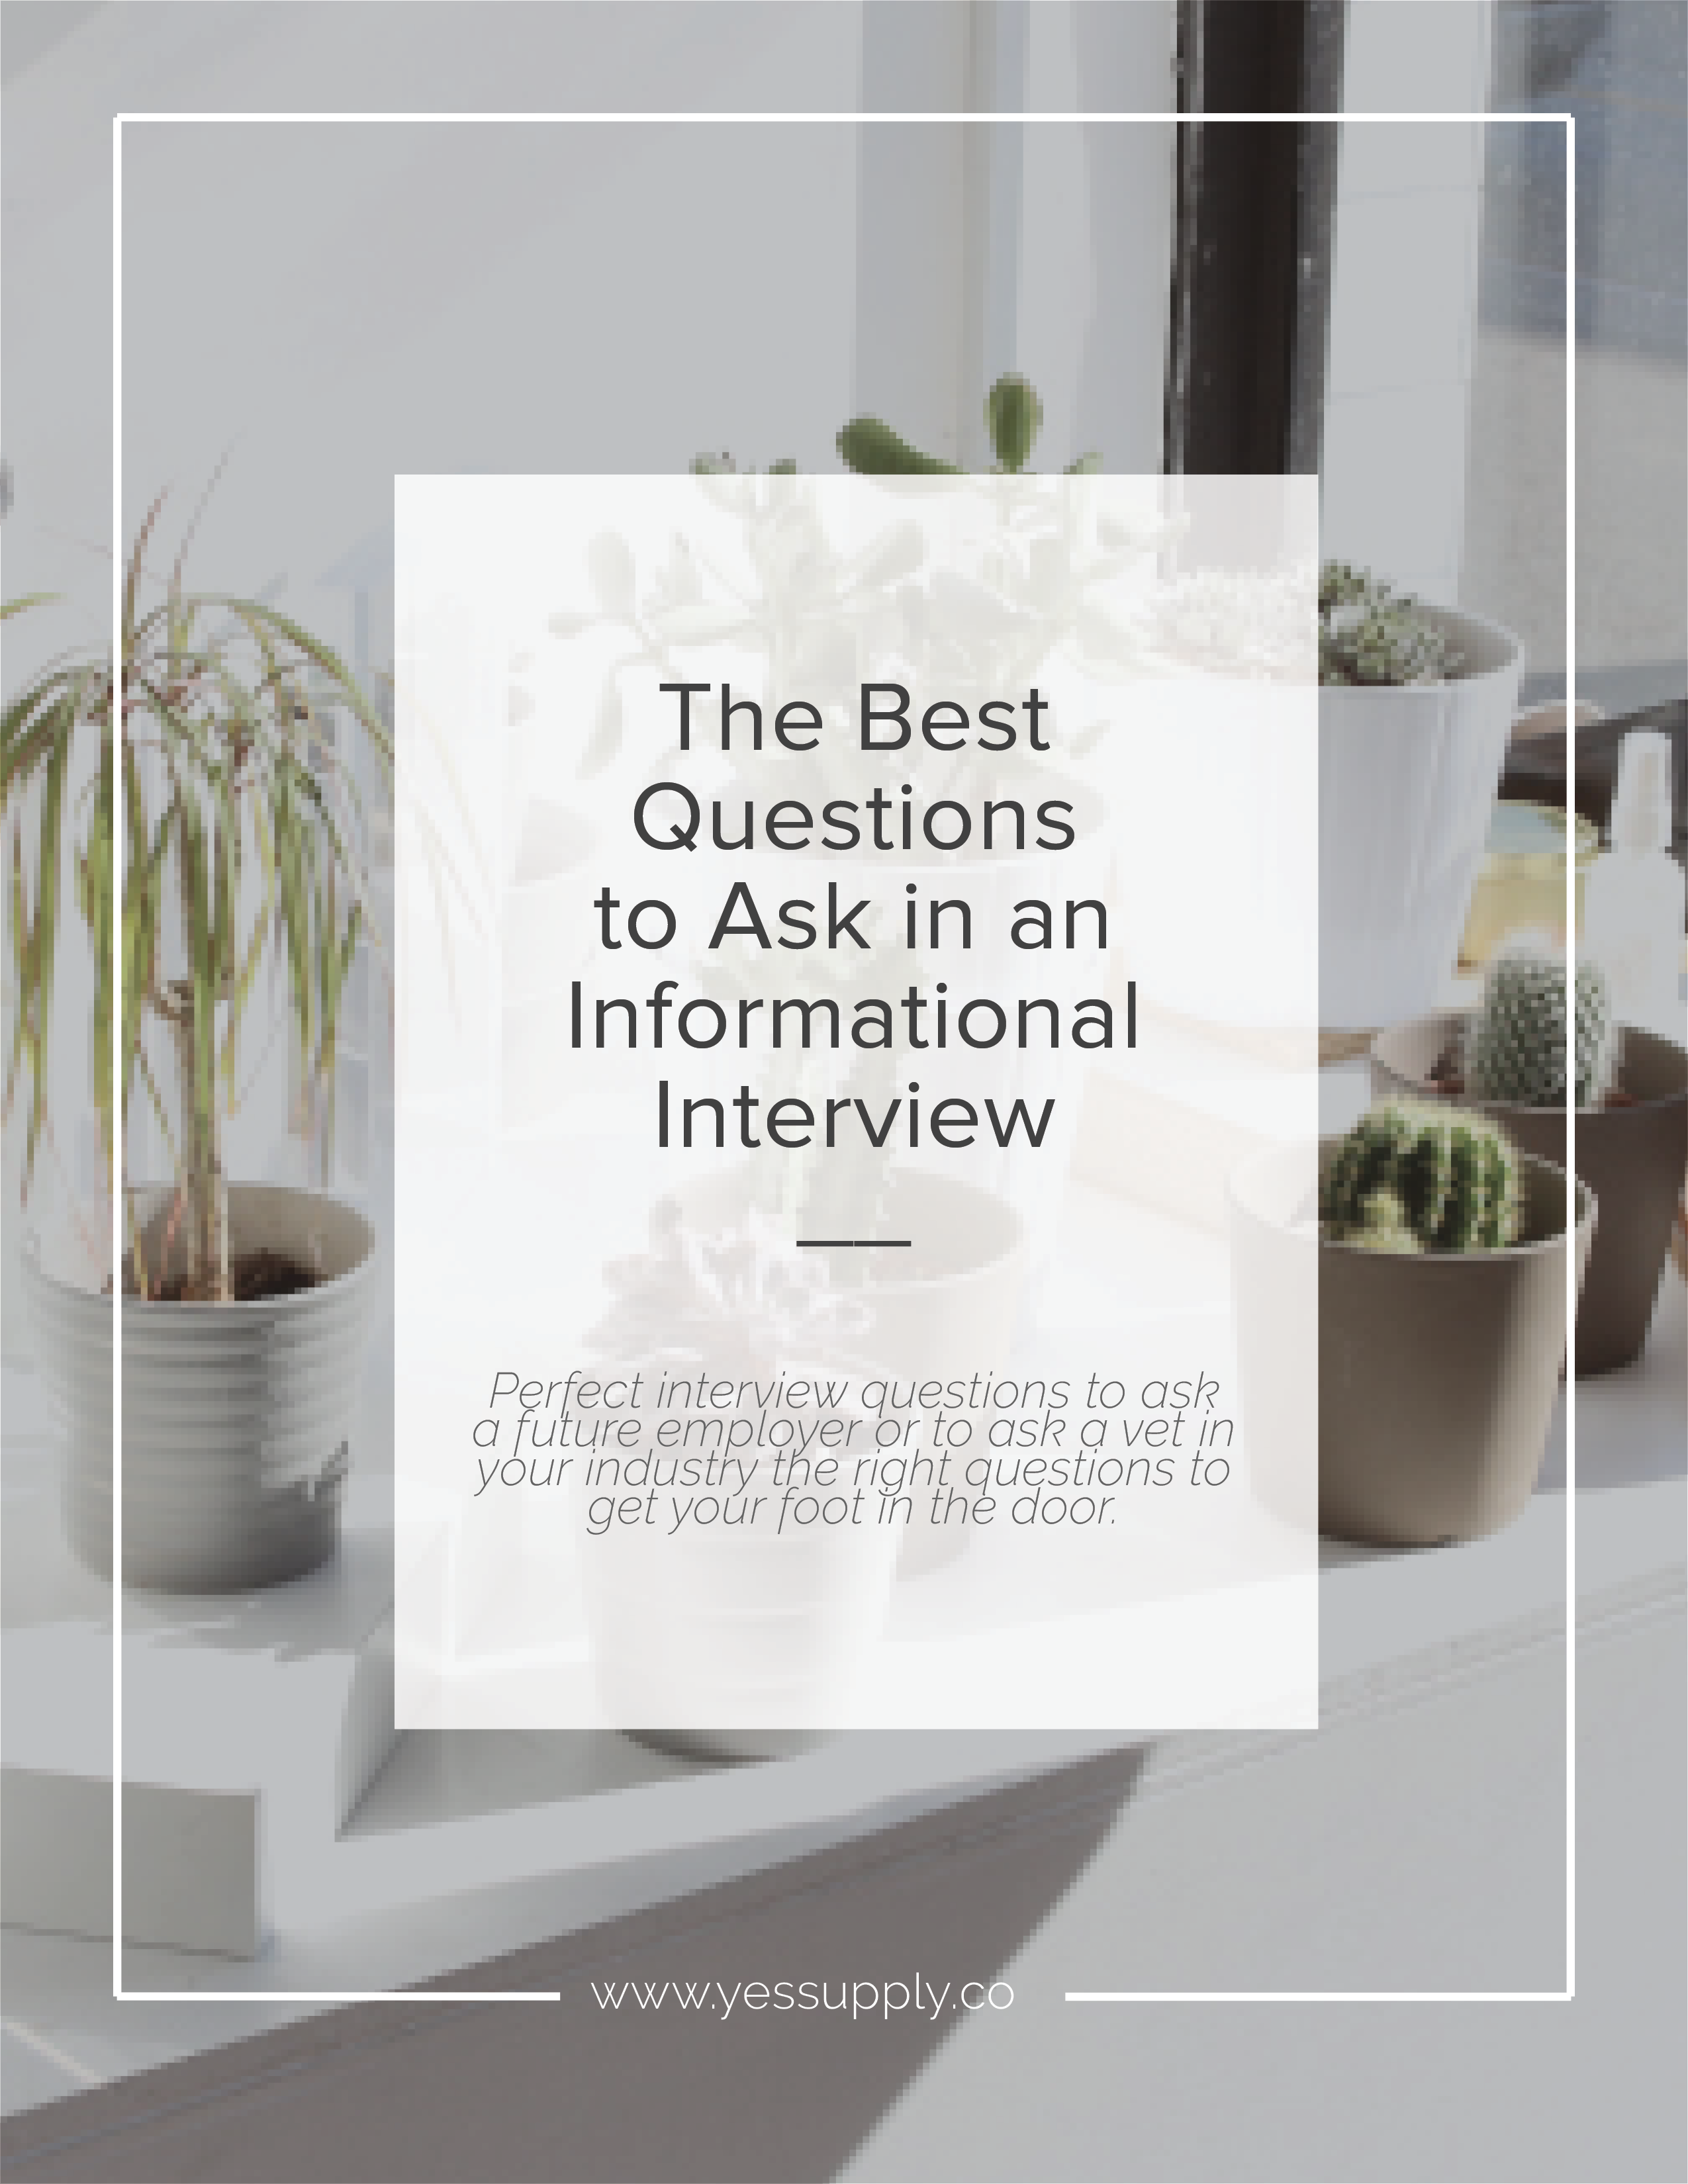 Best Questions to Ask in an Informational Interview